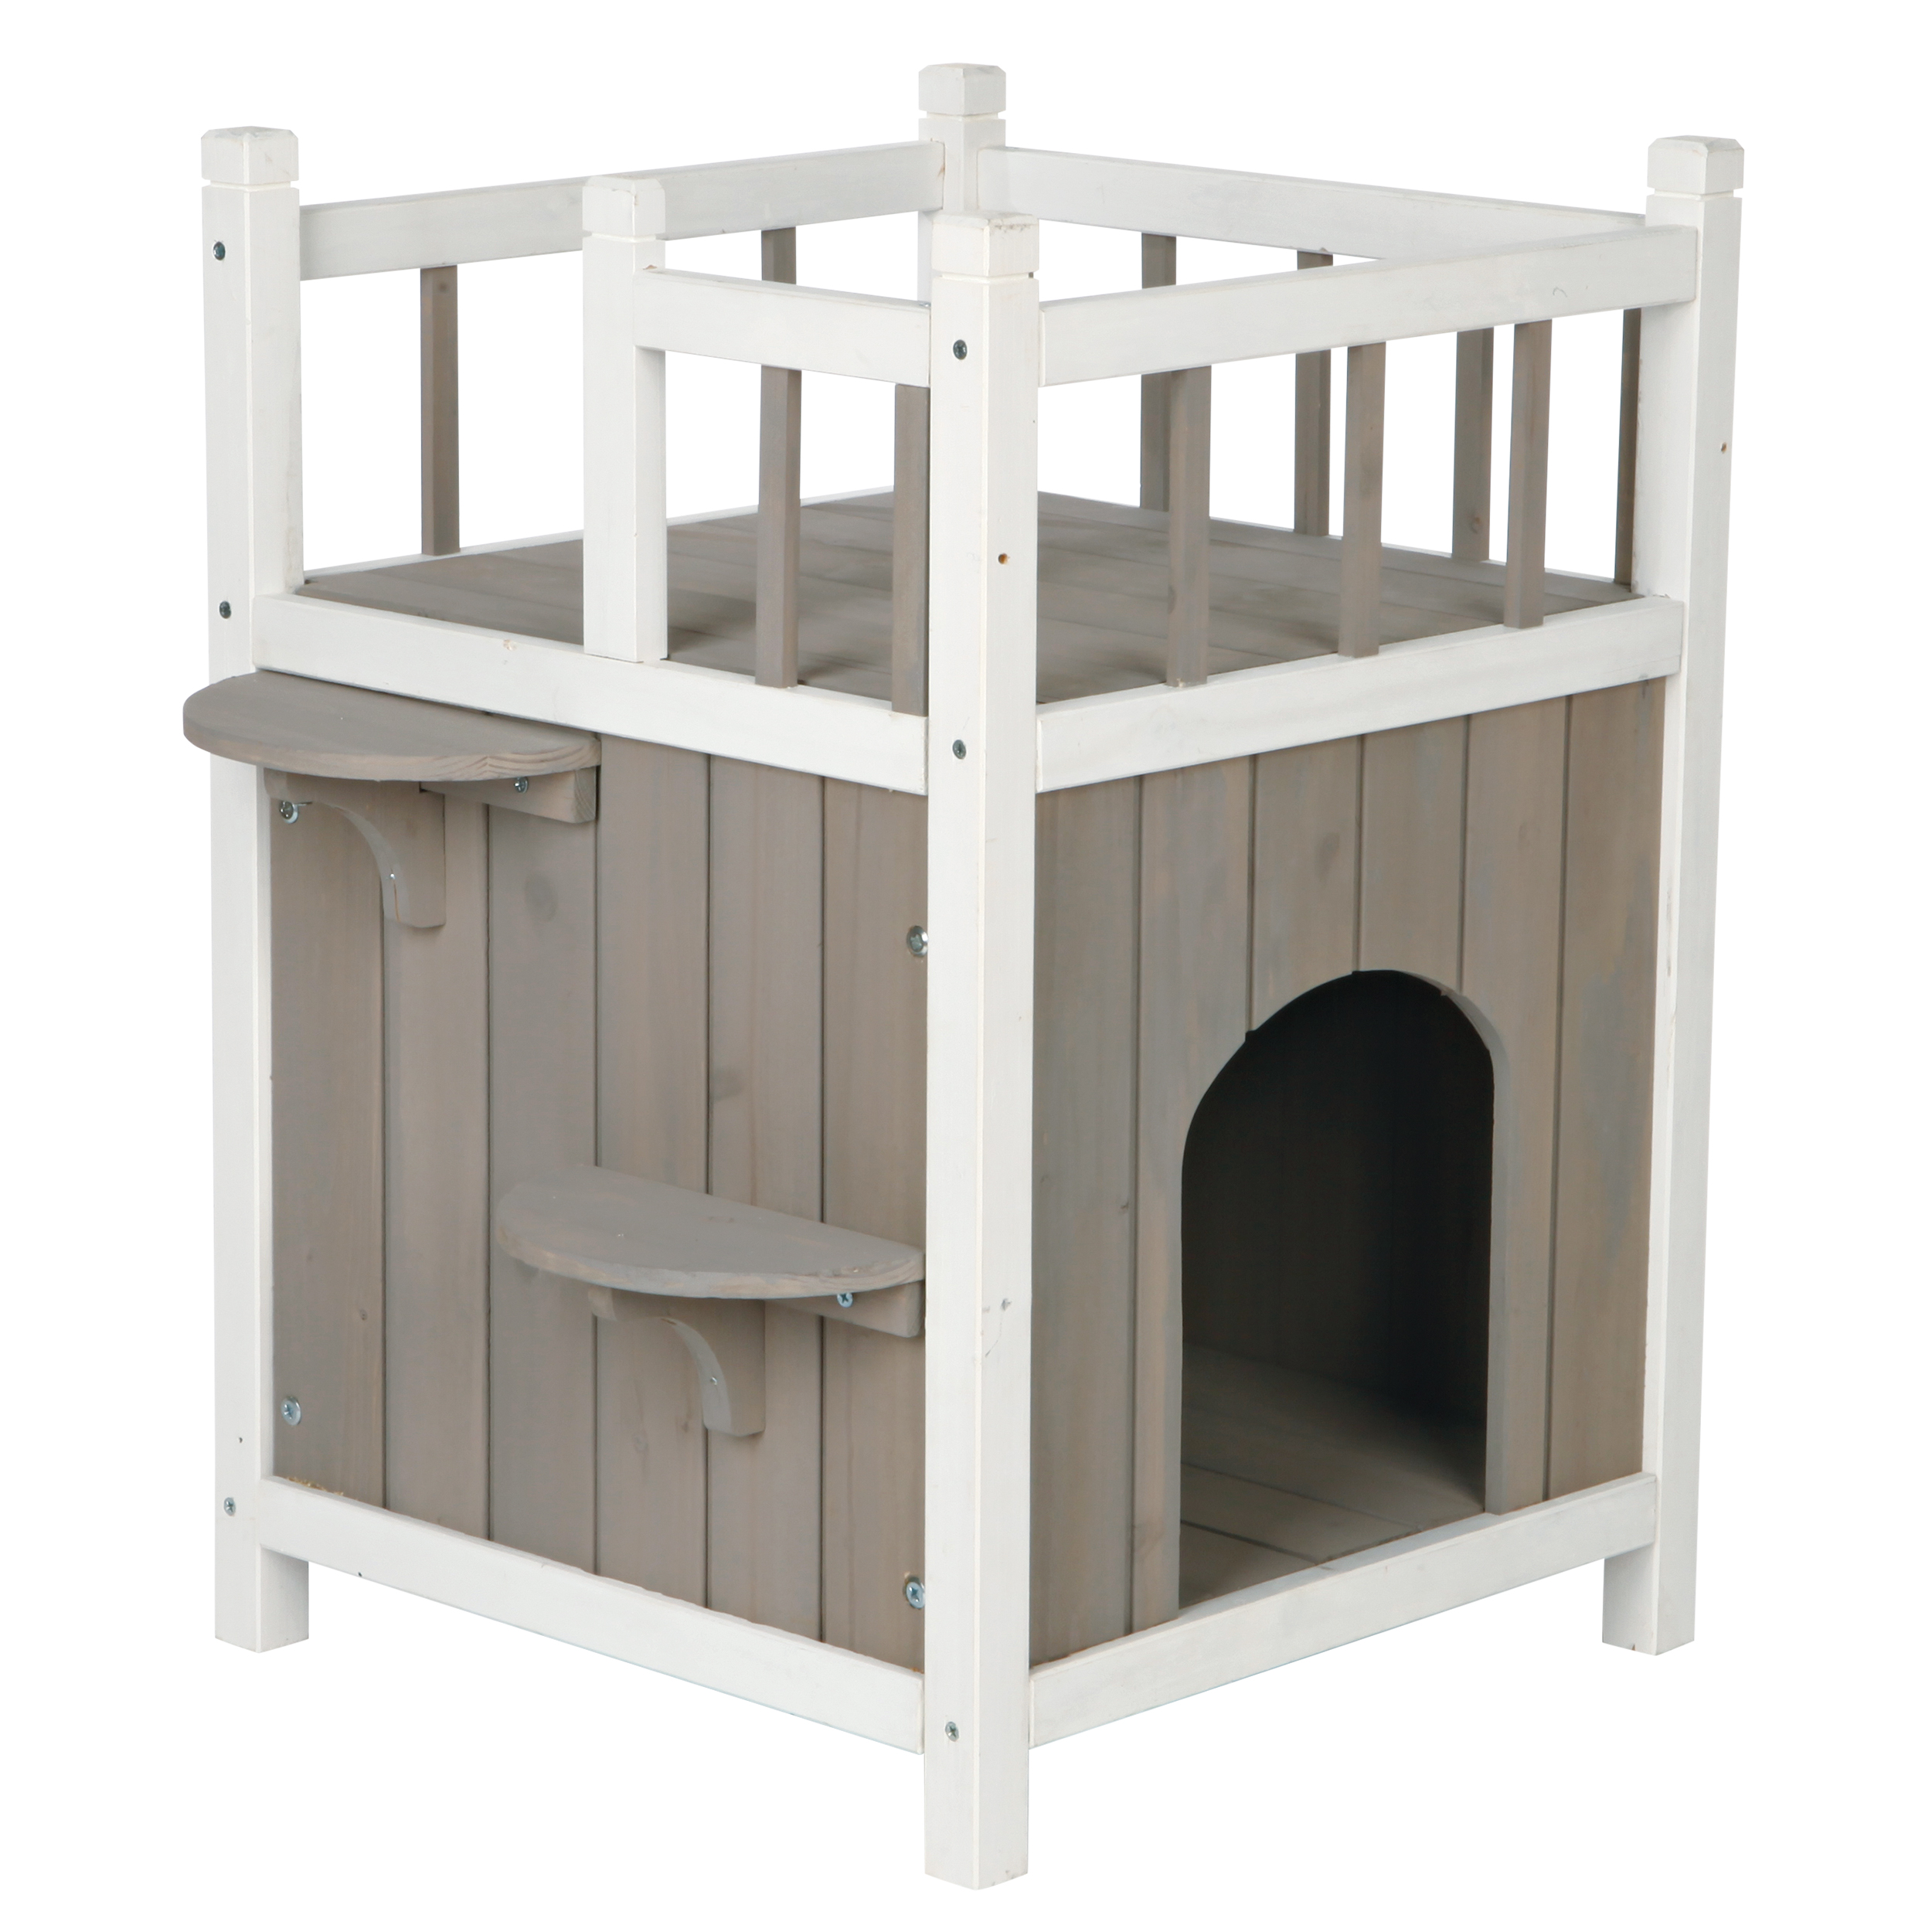 Trixie Pet Products Natura Pet Home With Balcony On Top For Indoor Outdoor Use Walmart Com Walmart Com